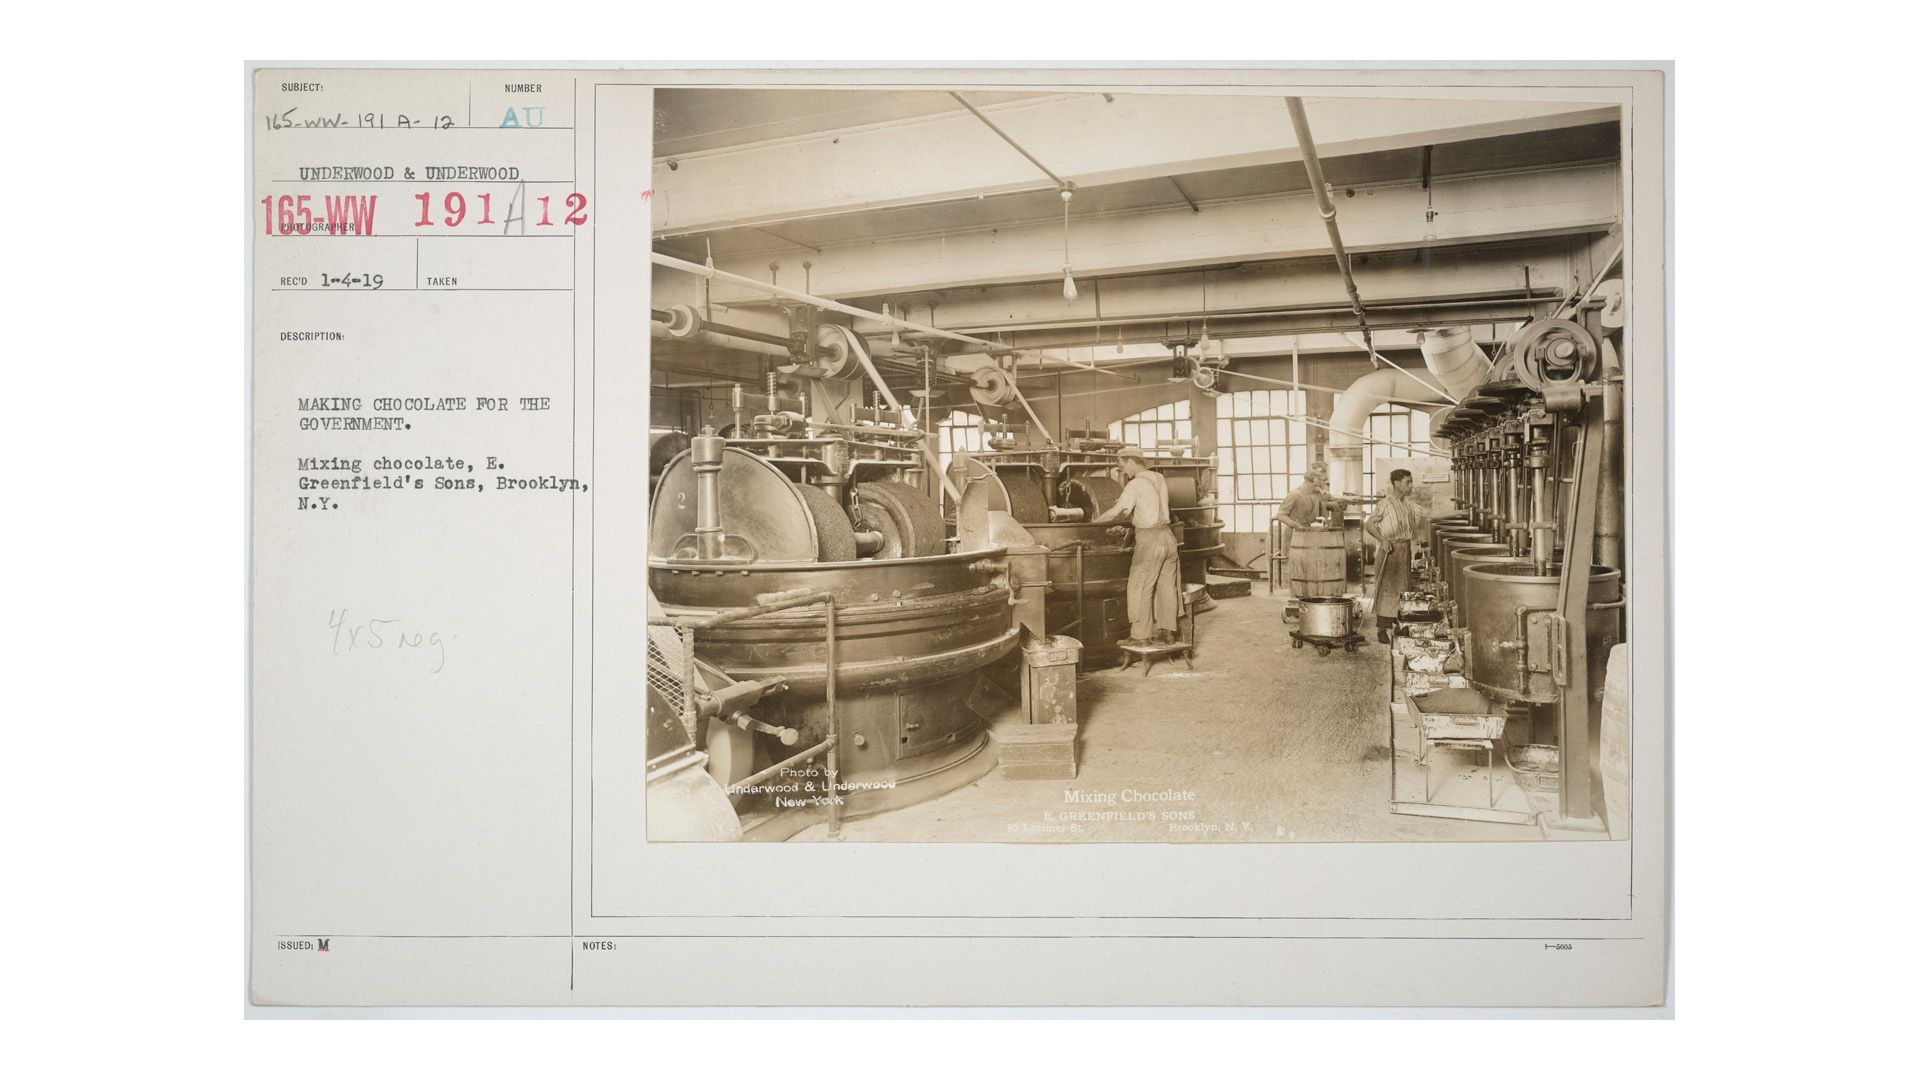 Mixing Chocolate, E. Greenfield's Sons, Brooklyn, 1919